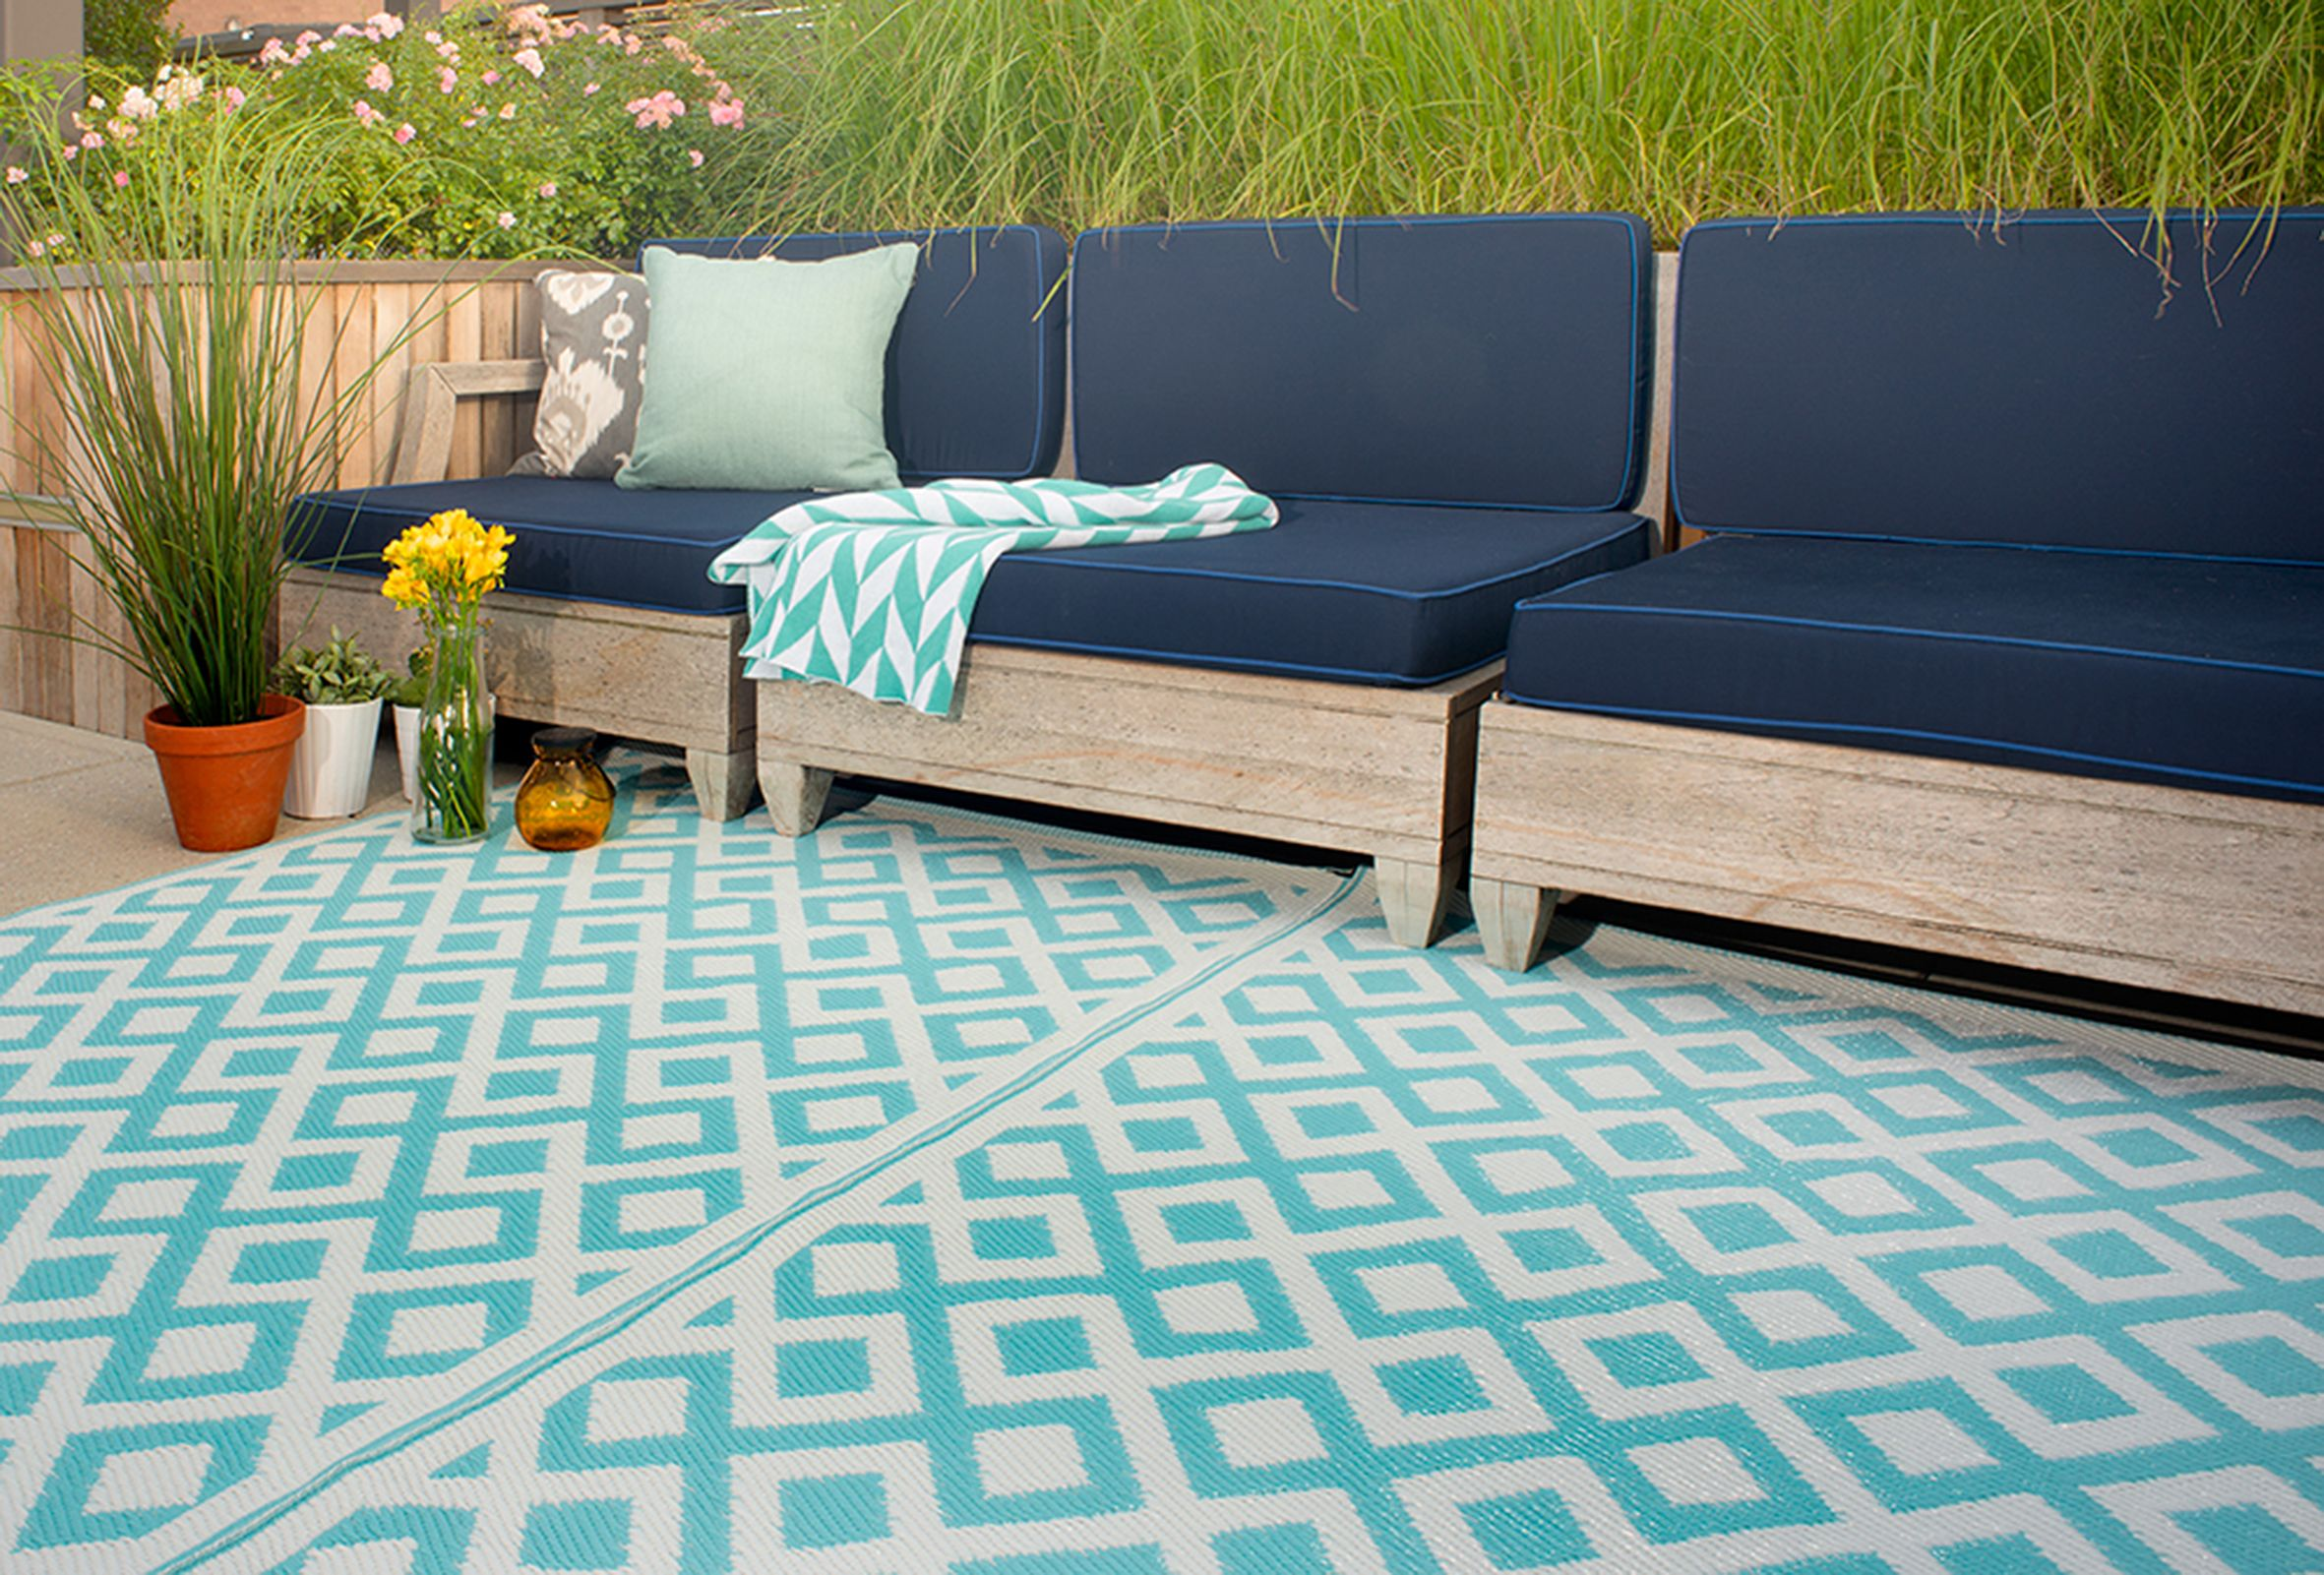 Marvelous Effigy Of Recycled Plastic Outdoor Rugs: Environmentally Friendly Choice